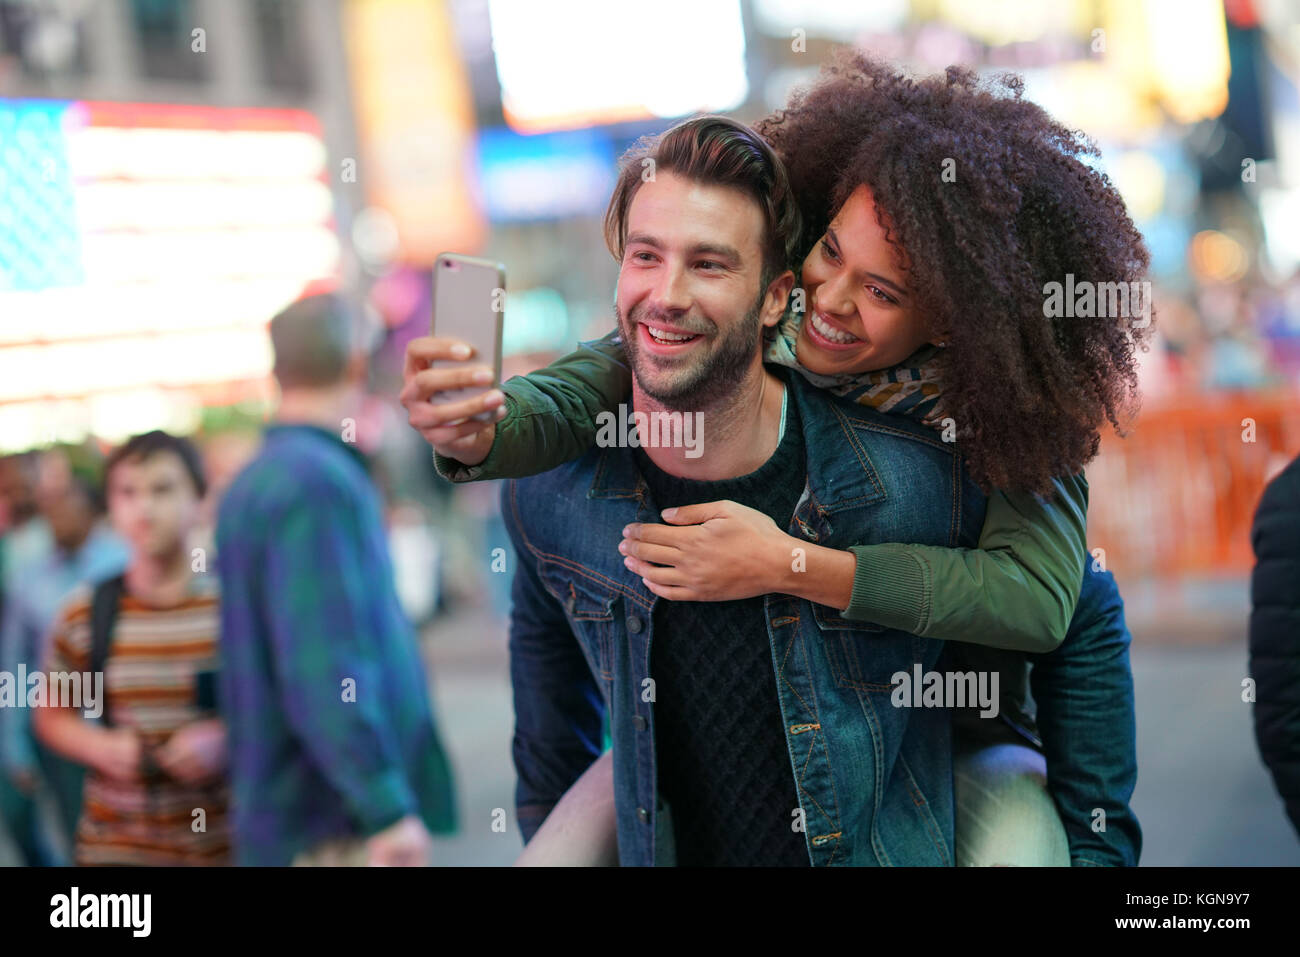 Couple at Times Square taking selfie picture - Stock Image